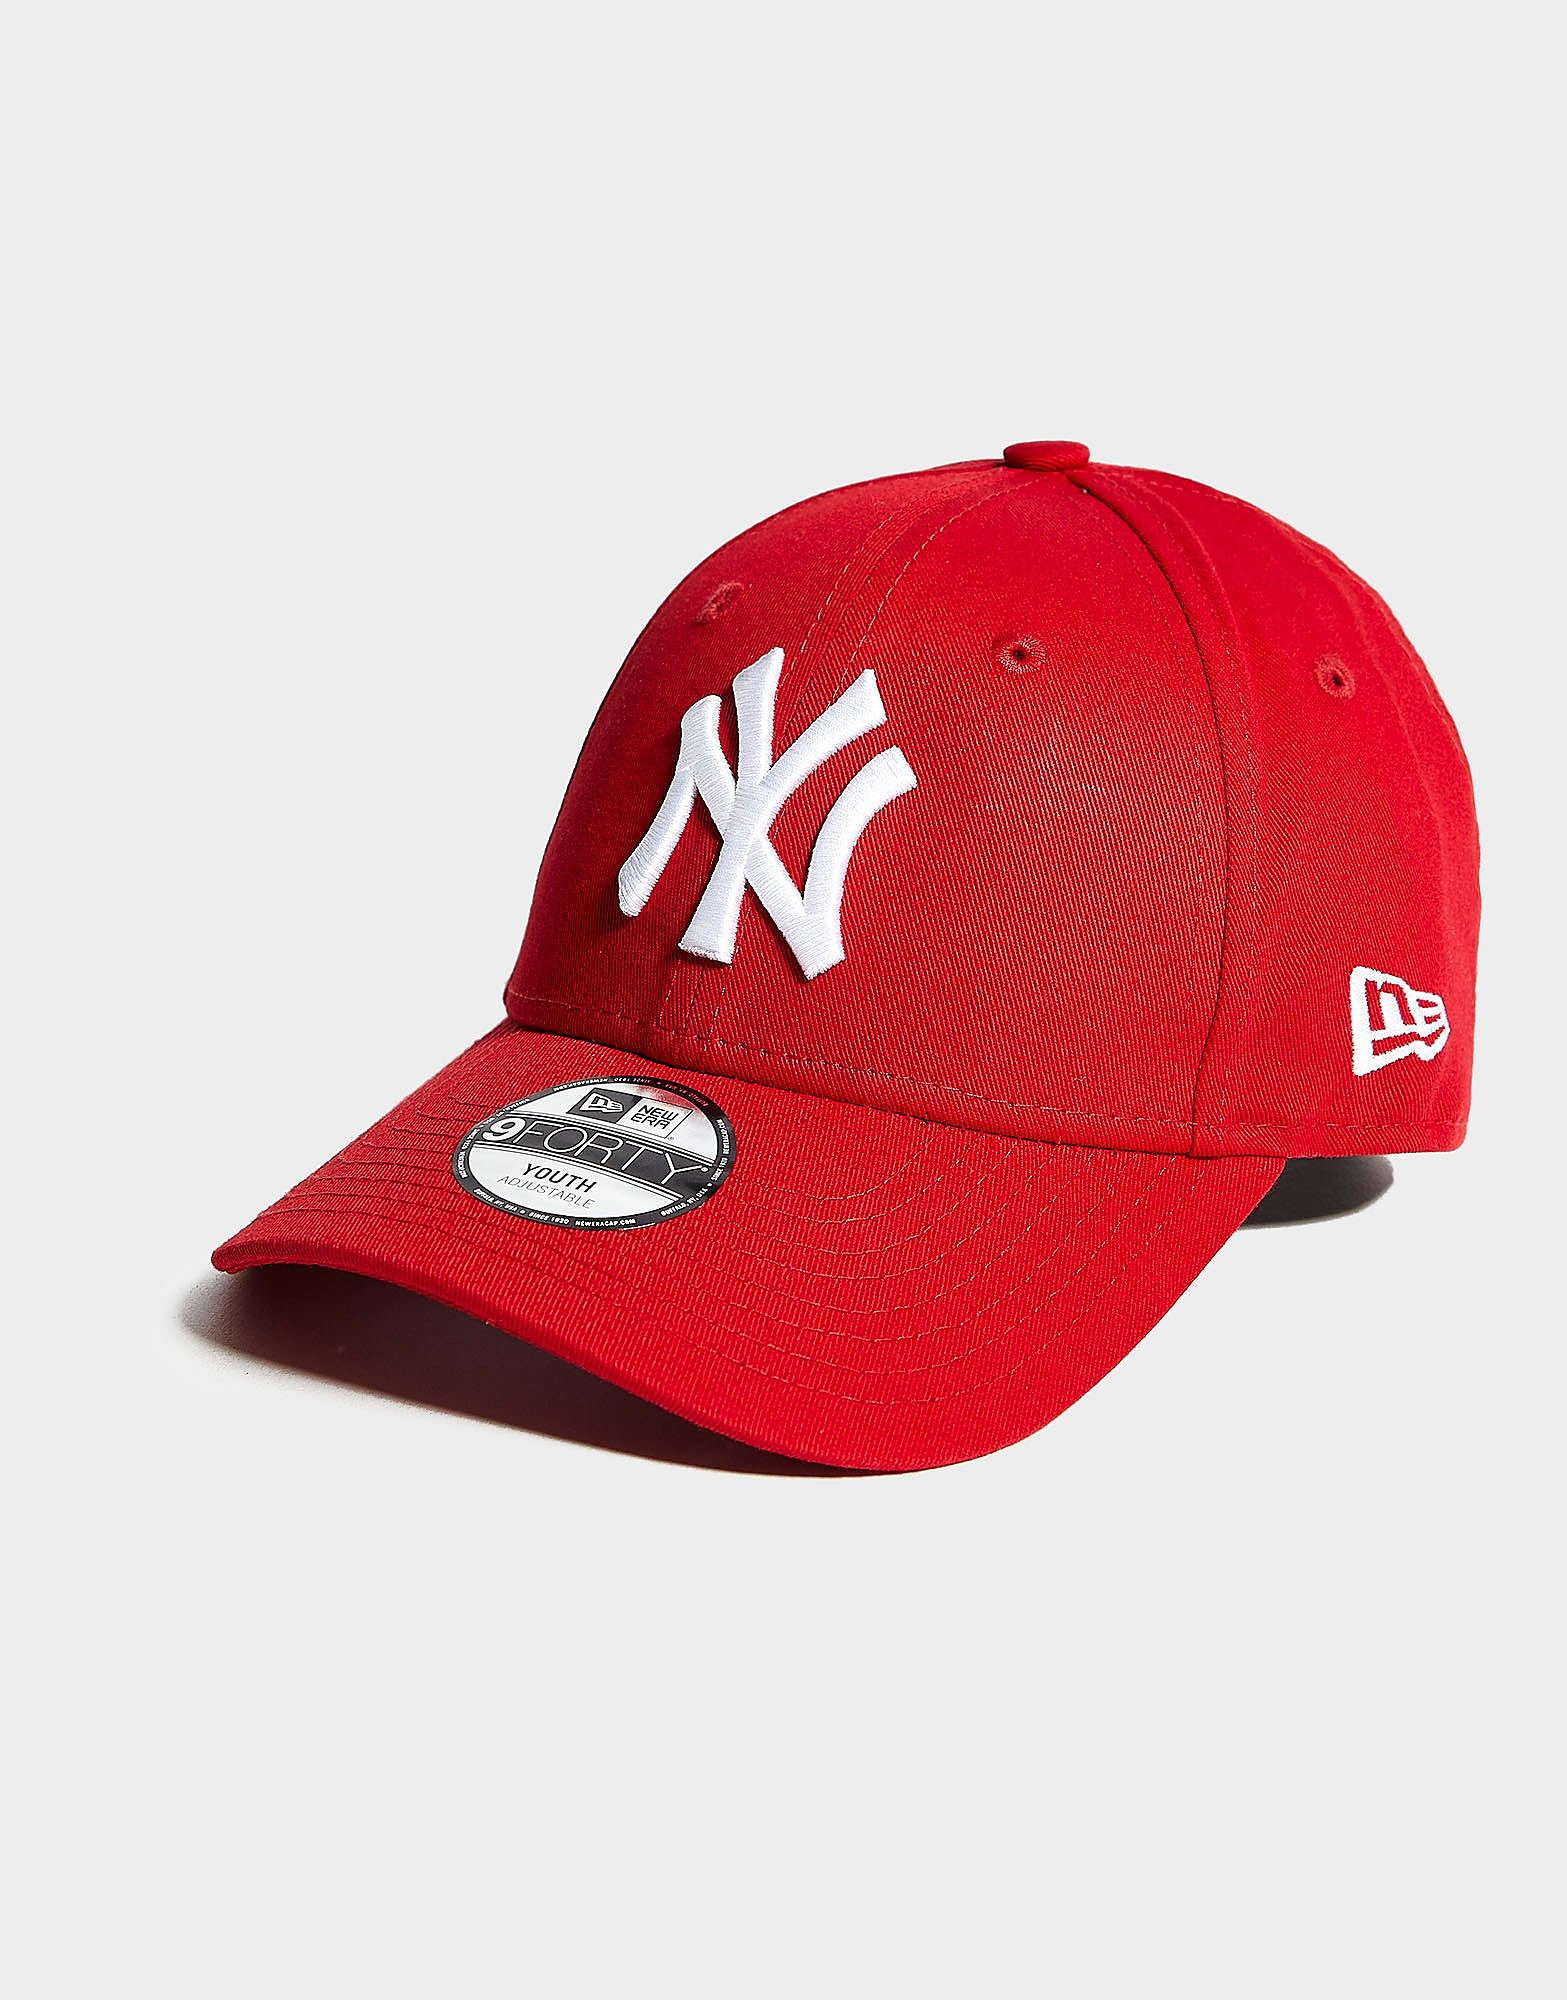 New Era 9FORTY MLB New York Yankees-kinderpet - Rood - Kind